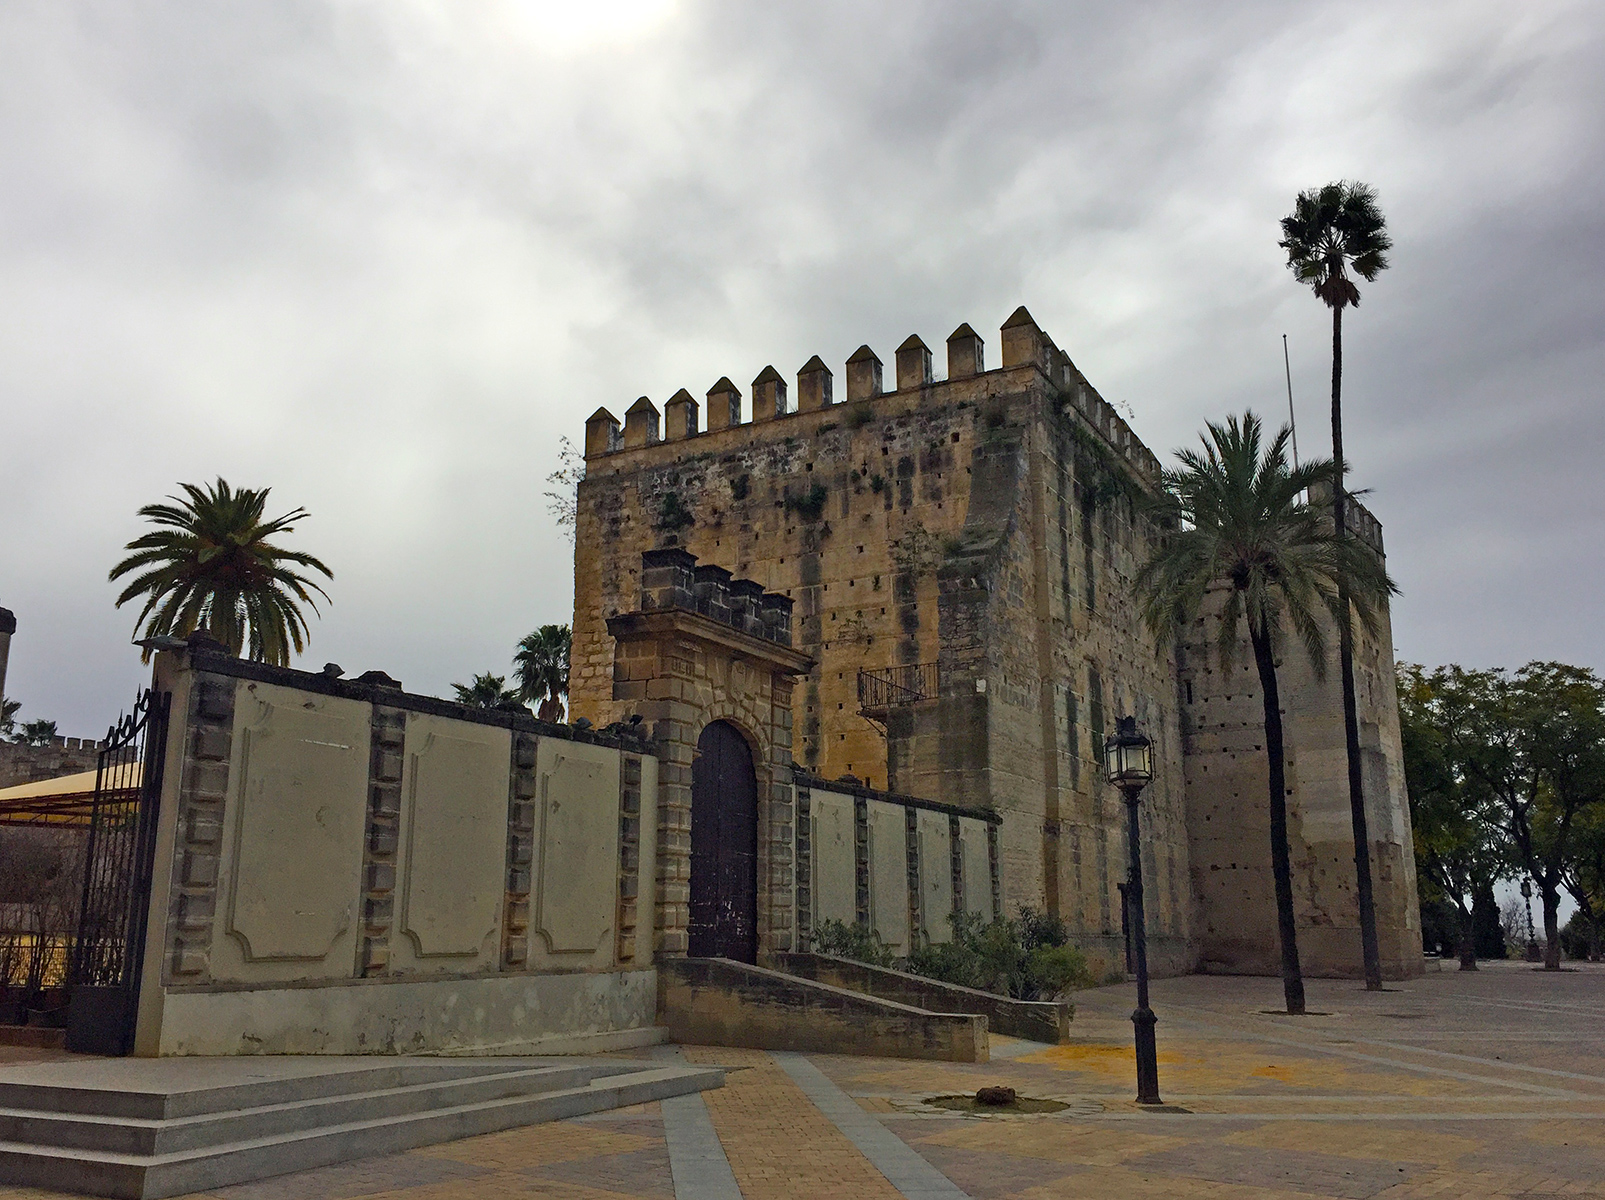 Alcázar in Jerez de la Frontera, Spain by Jets Like Taxis